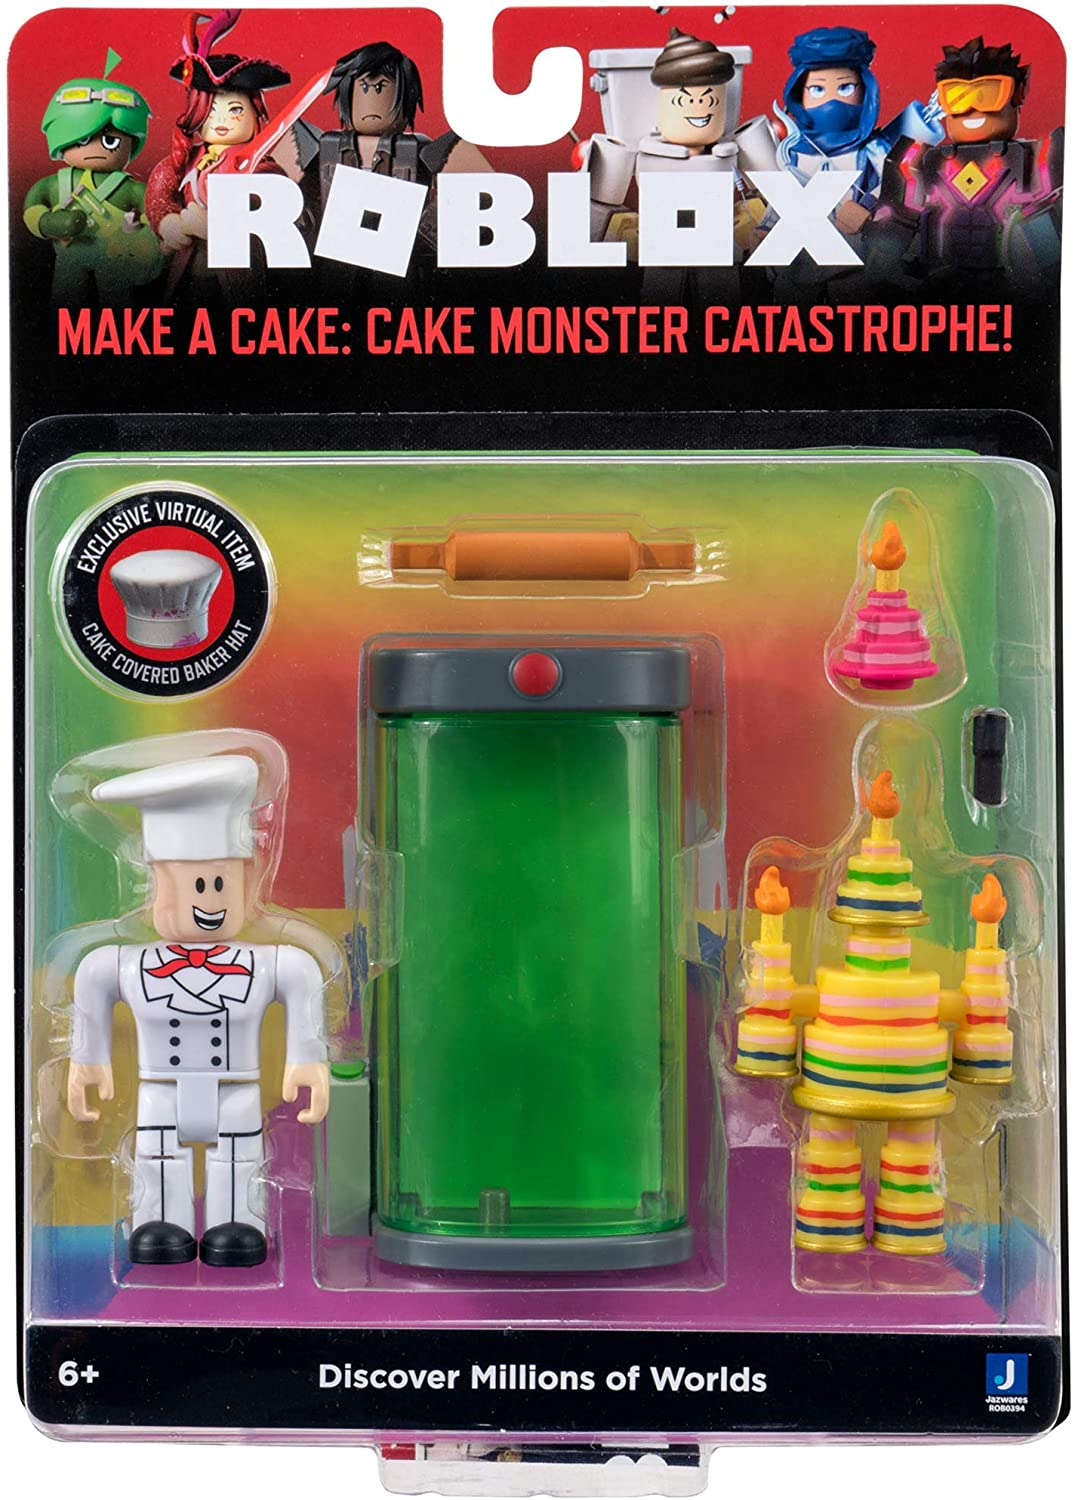 Roblox Action Collection - Make a Cake: Cake Monster Catastrophe! Game Pack...